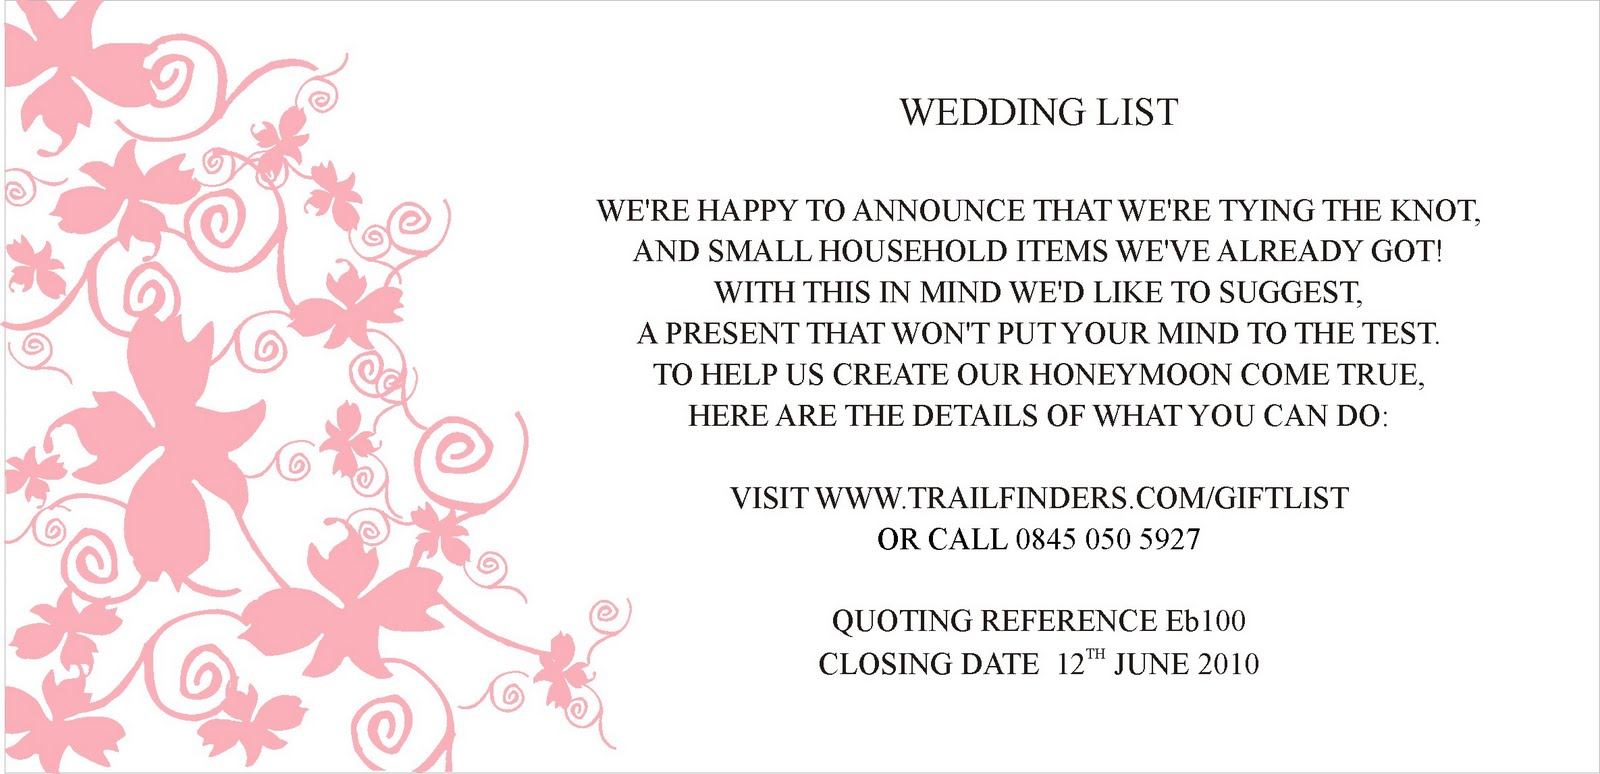 Wedding Gift Card Message Suggestions : Siti Afifah Memilih Kartu Model Wajid zmzb2c